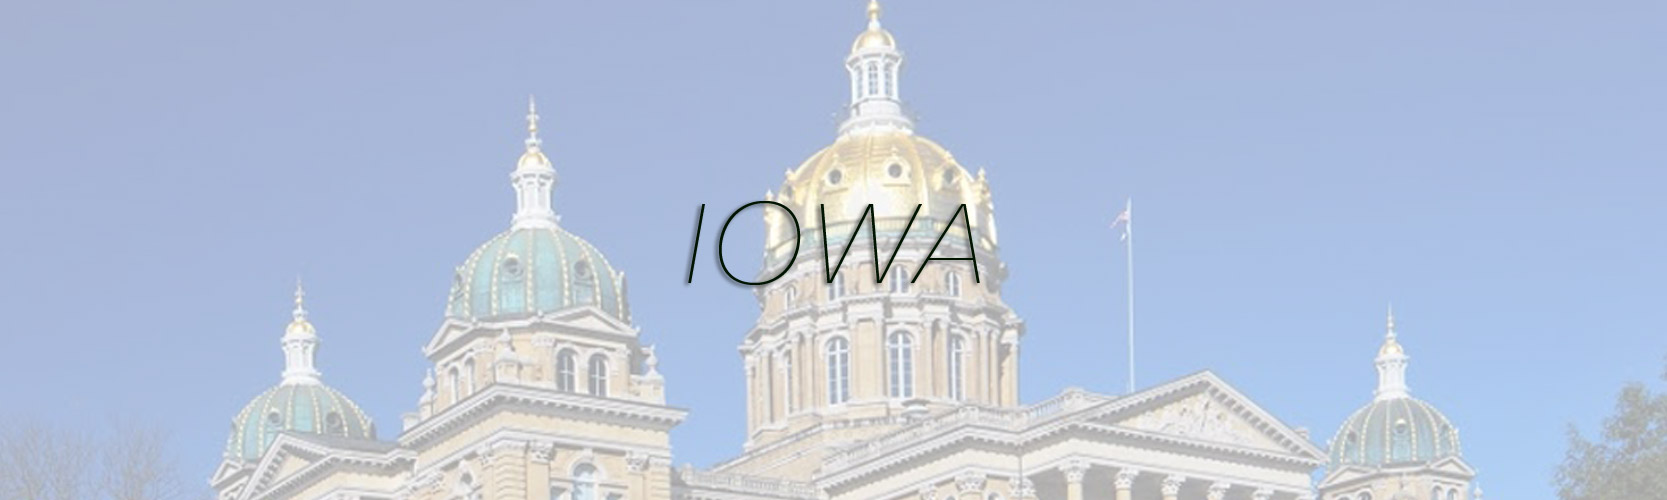 Sofa Mart North Little Rock Shipping Futons To Iowa Futon Sofa Beds Delivered To Iowa The